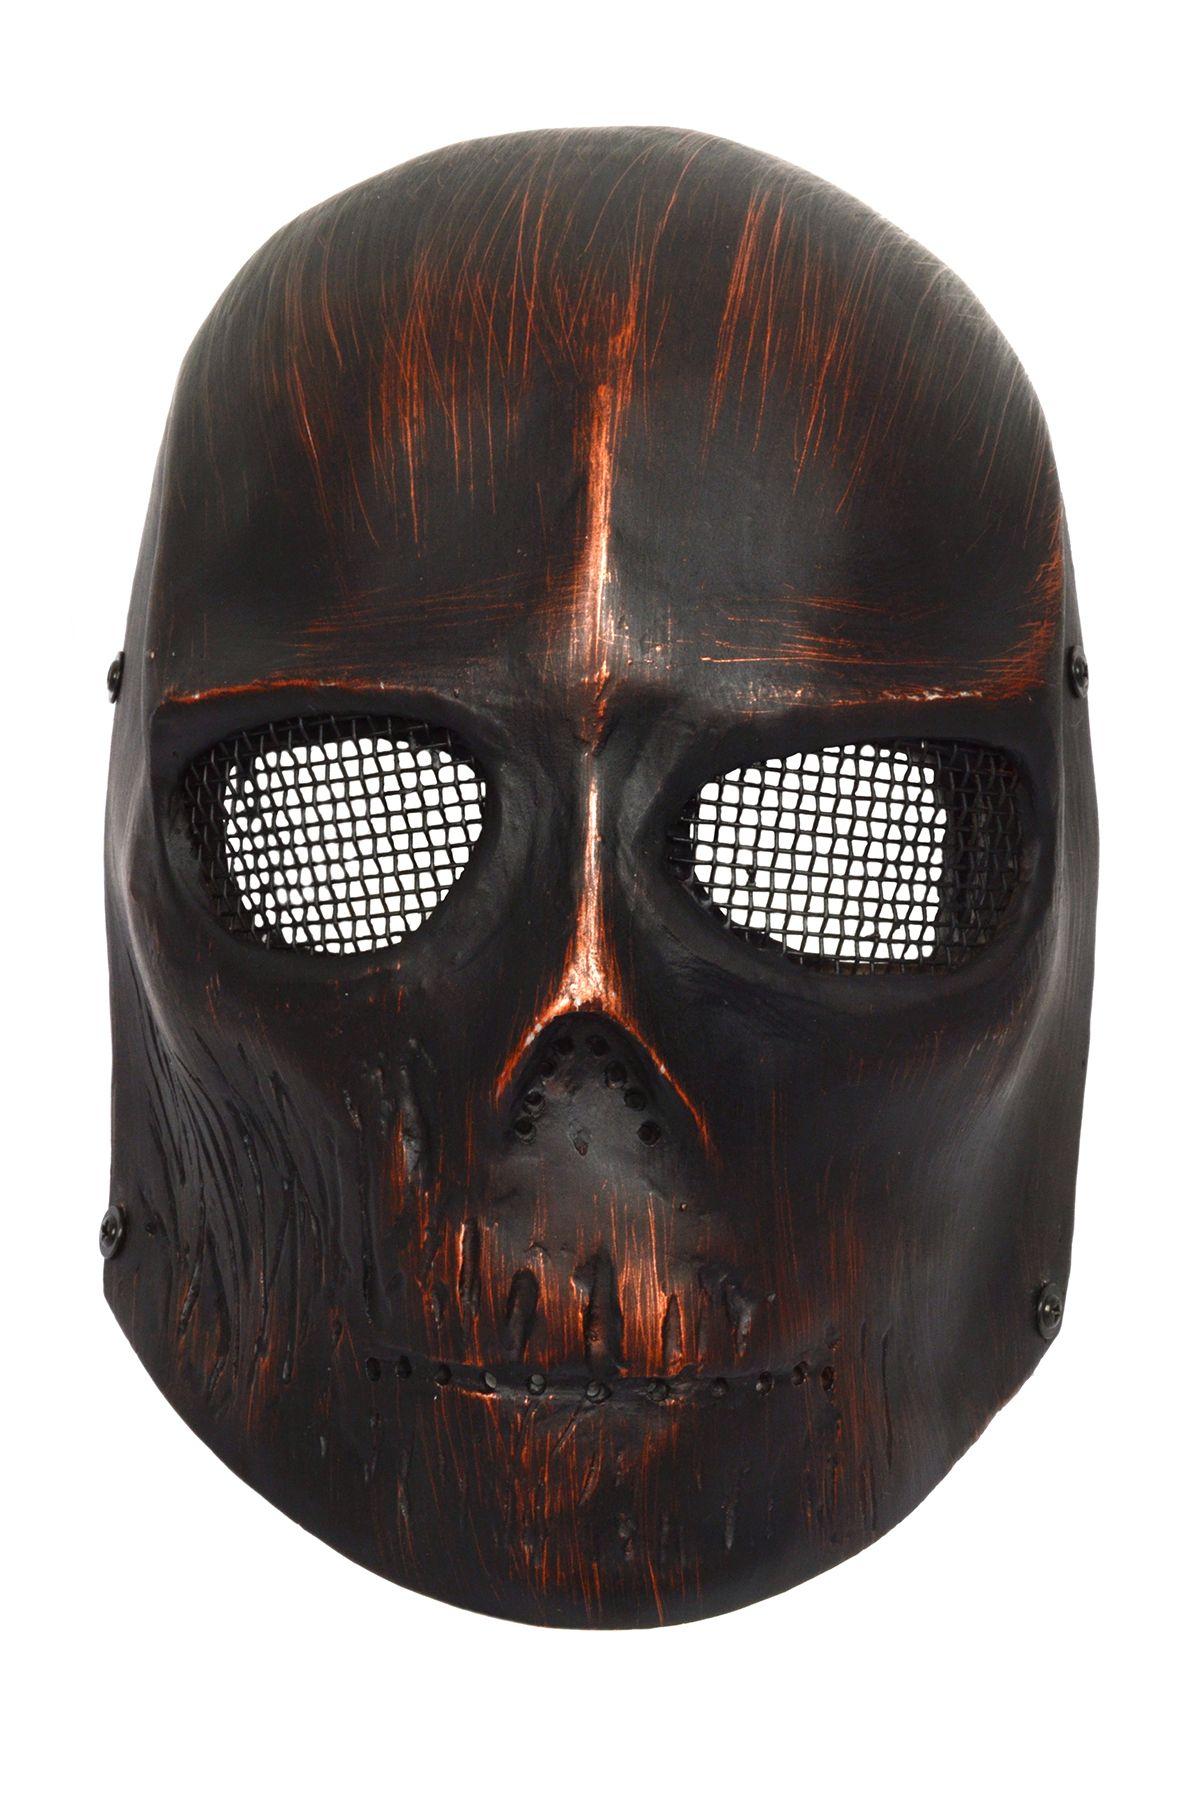 Buy g force airsoft inferno wire mesh tactical army full face mask buy g force airsoft inferno wire mesh tactical army full face mask red skull voltagebd Gallery